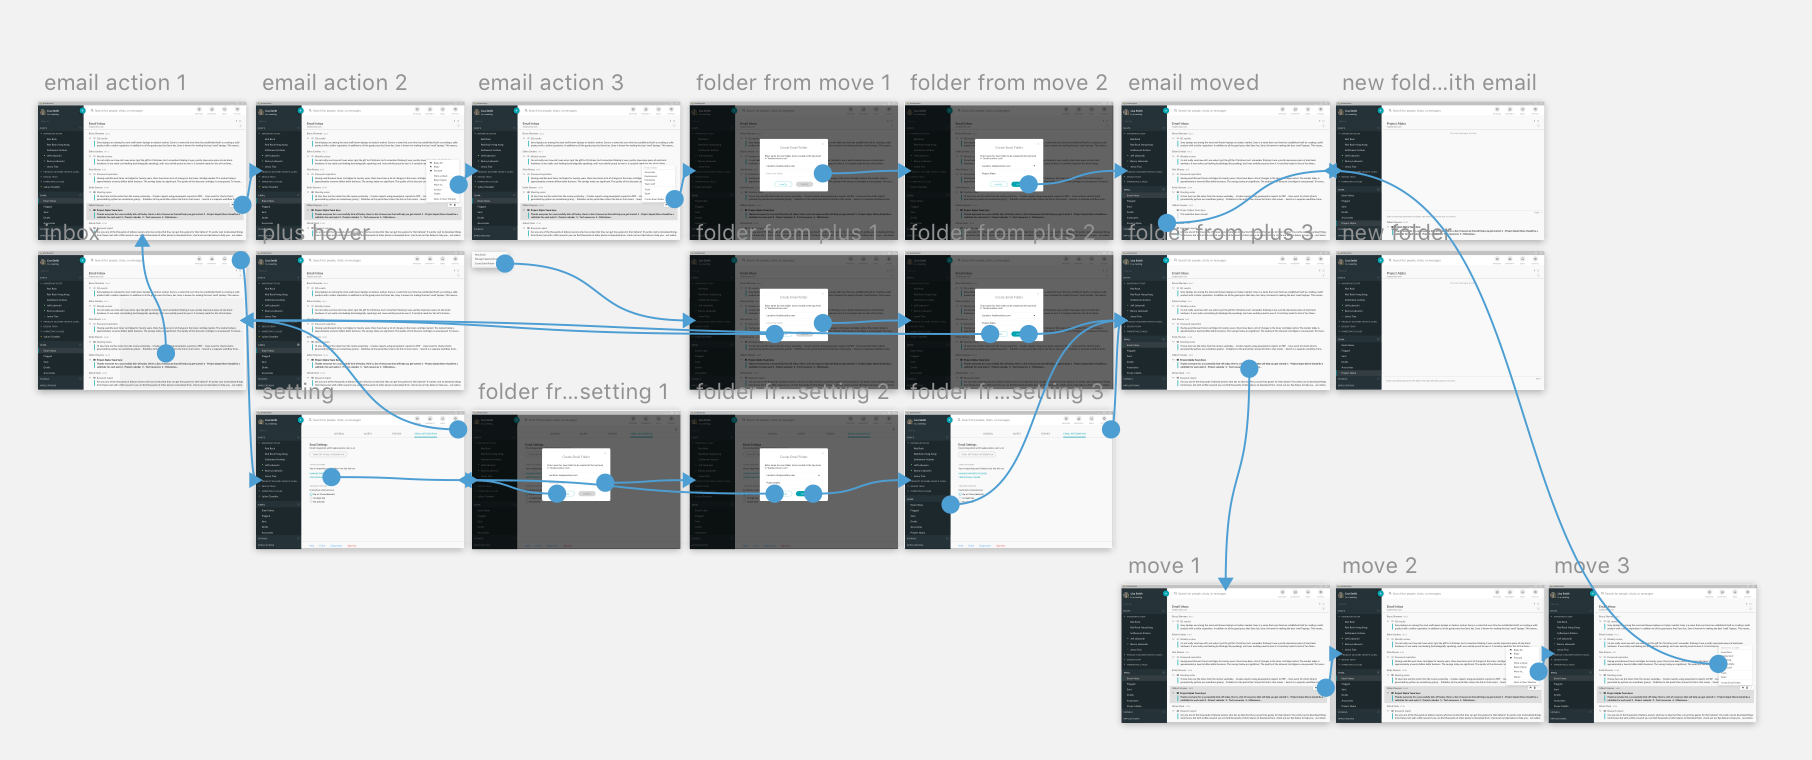 Prototype for testing an email flow